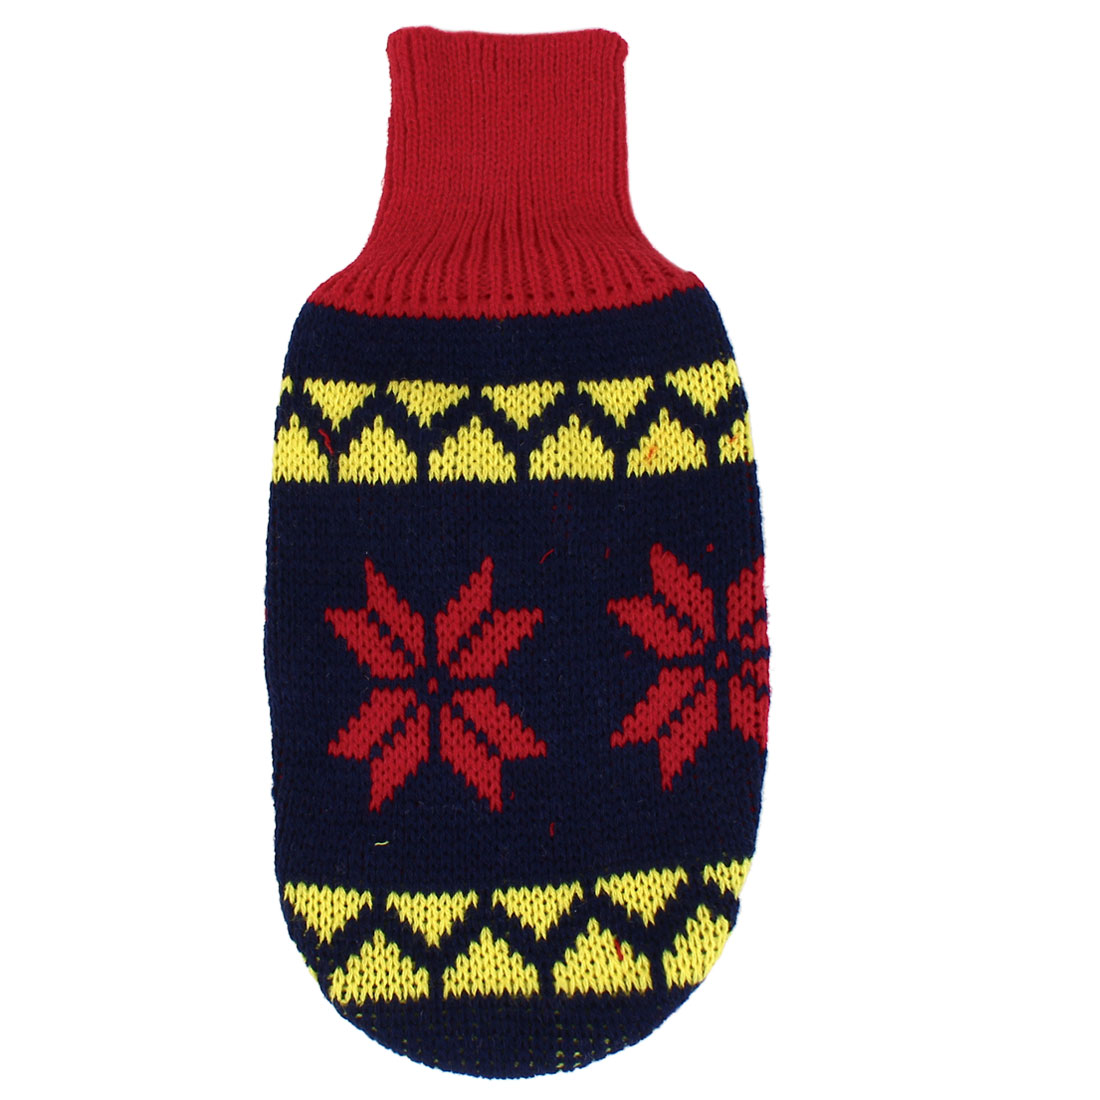 Pet Dog Puppy Ribbed Cuff Knitwear Turtleneck Apparel Sweater Dark Blue Red Yellow Size XS